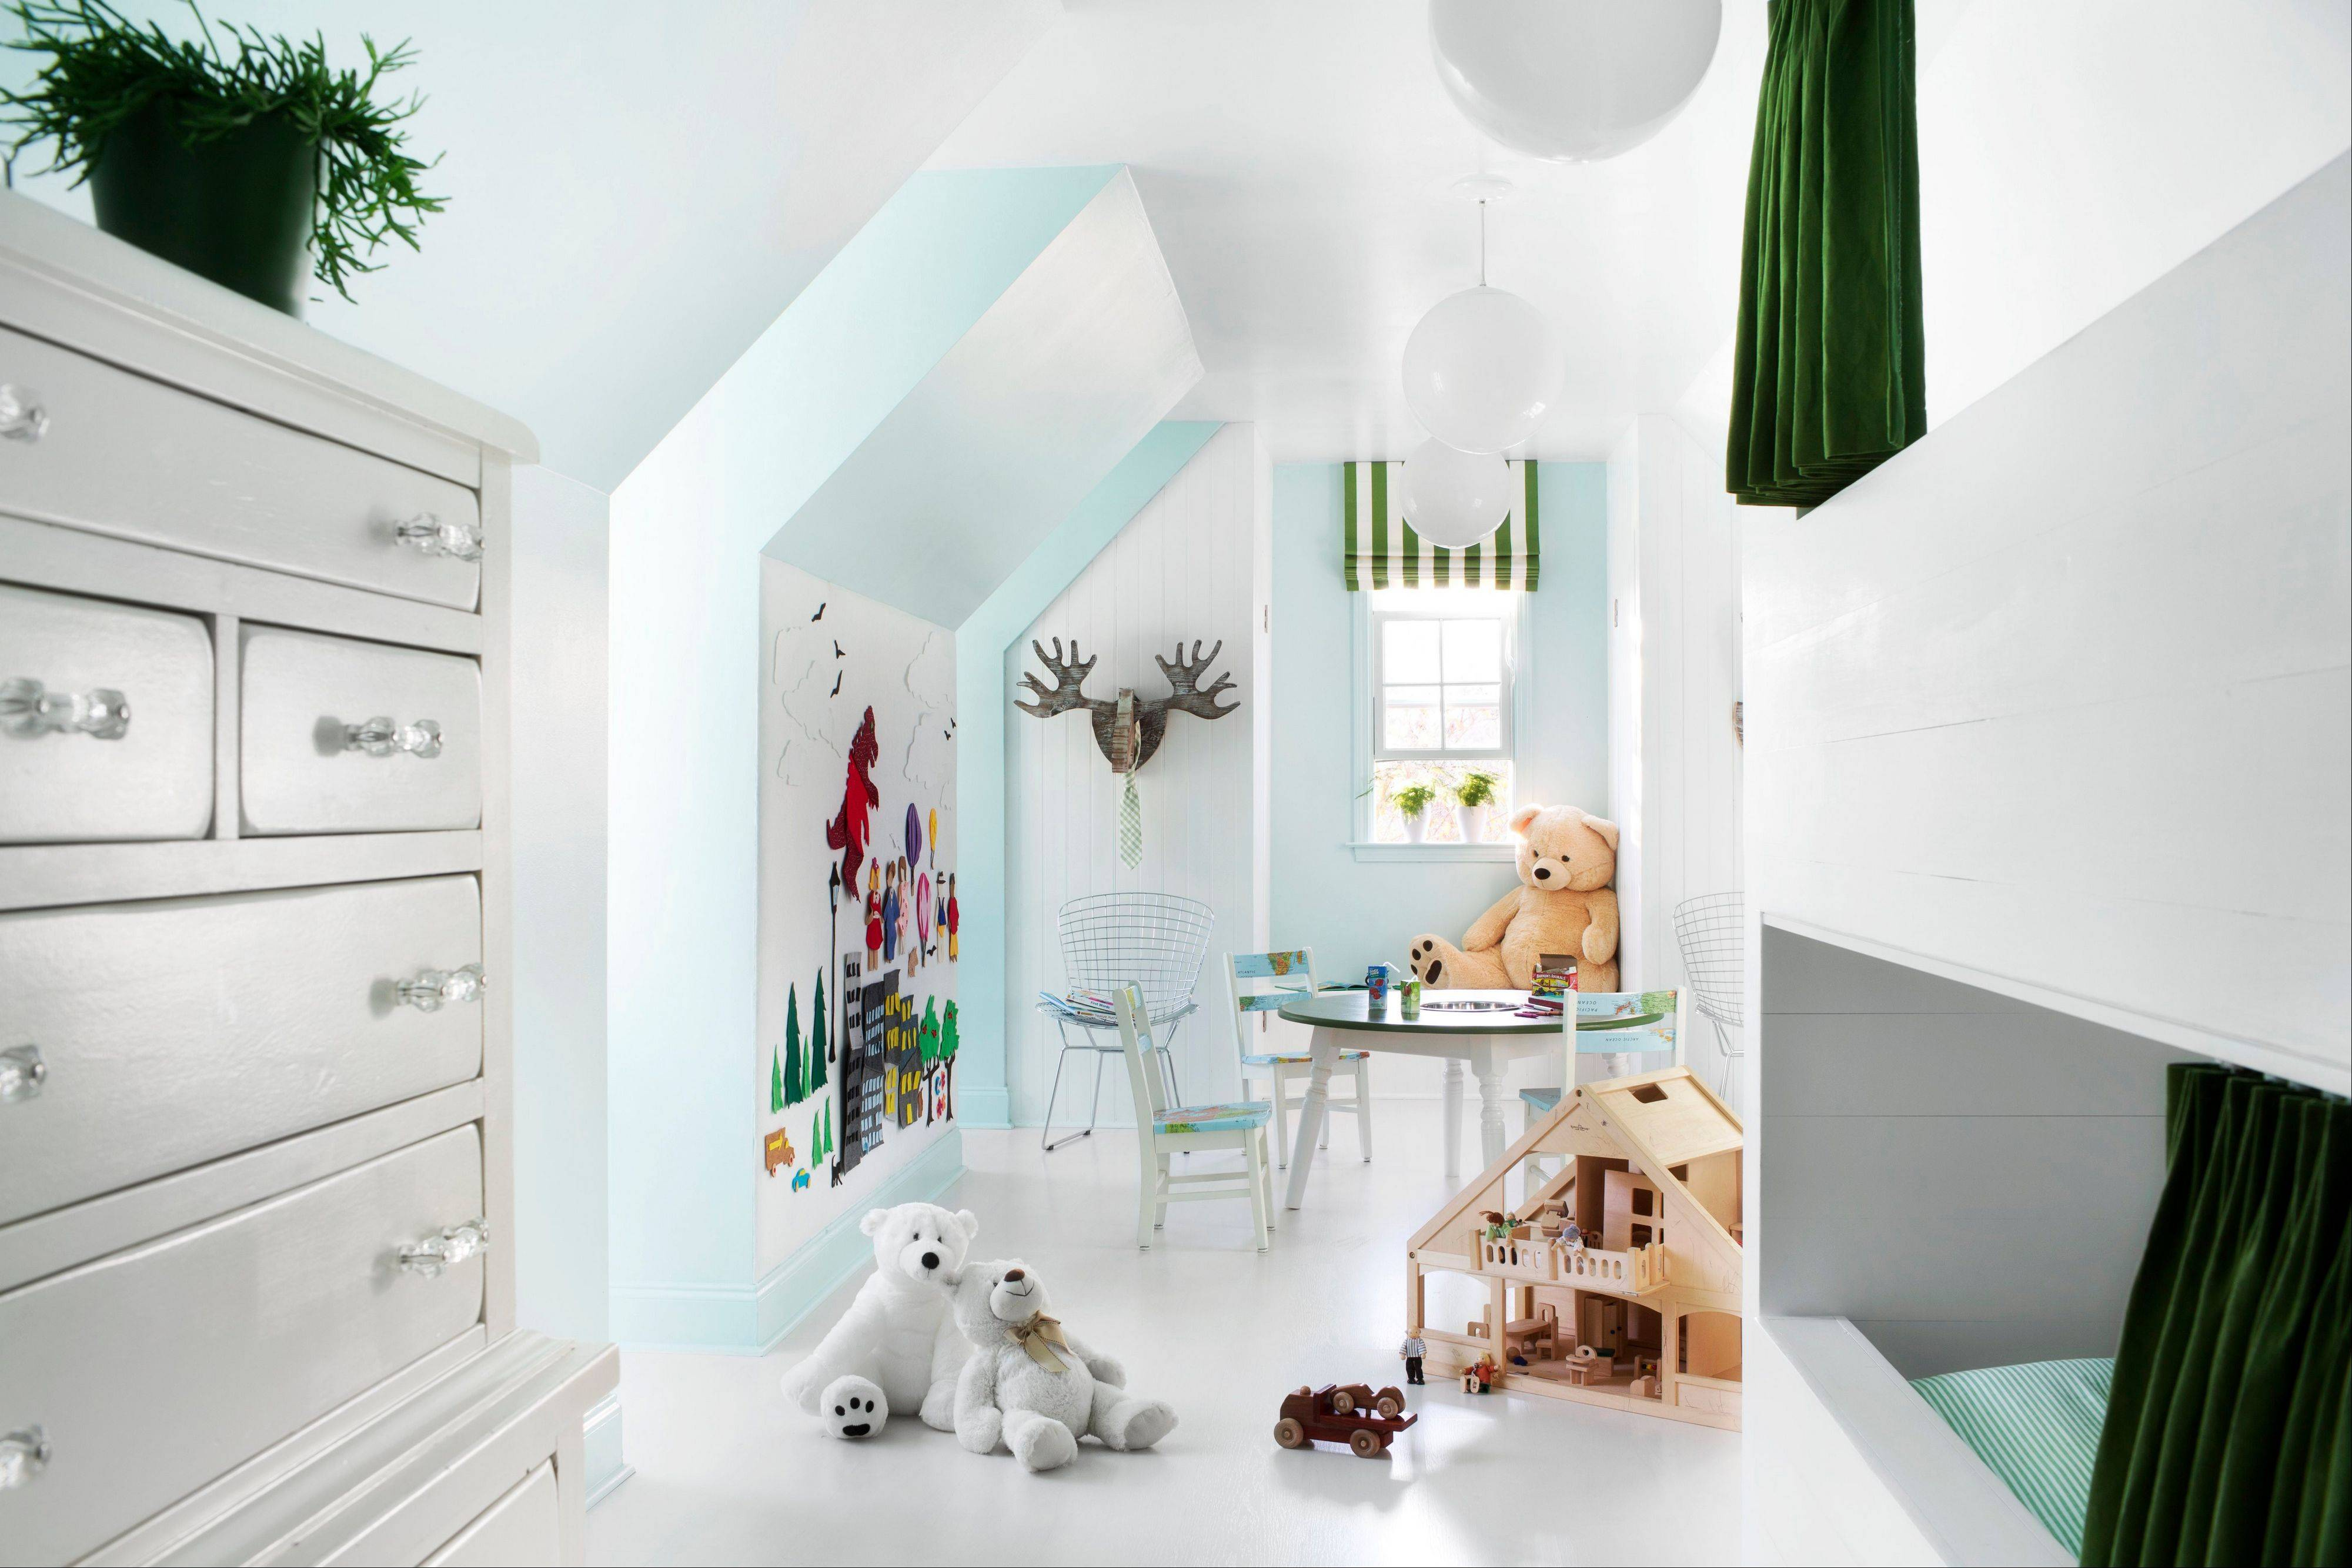 White plastic globe lights used by Designer Brian Patrick Flynn when decorating children's bedrooms. The retro style is back as globe lights were popular in the 1950s because they cast a very flattering glow.